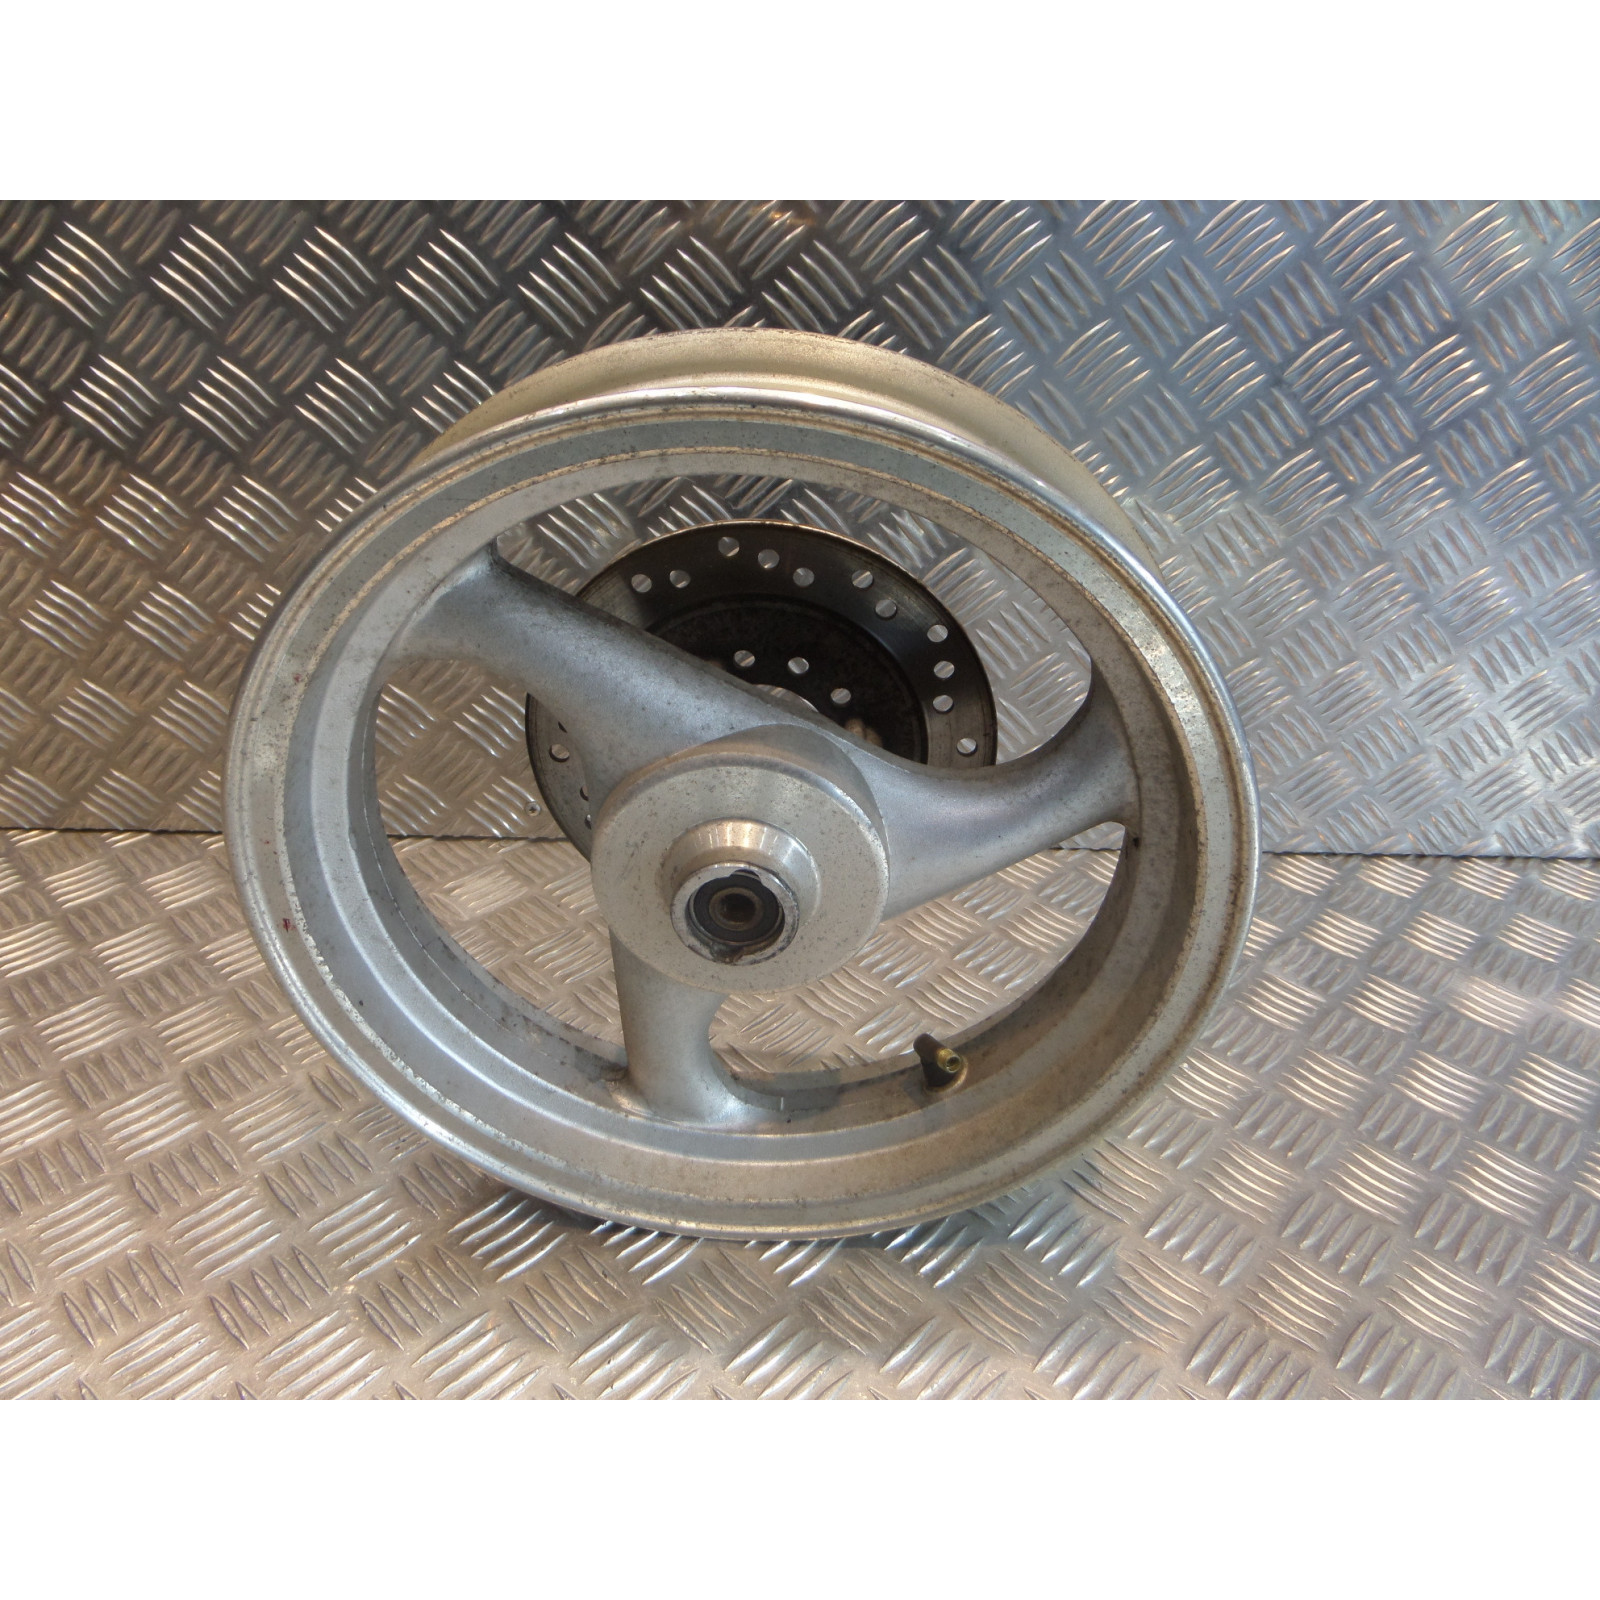 roue jante avant 2.50 x 12 disque frein scooter chinois 50 gy6 qt9 max 1368n